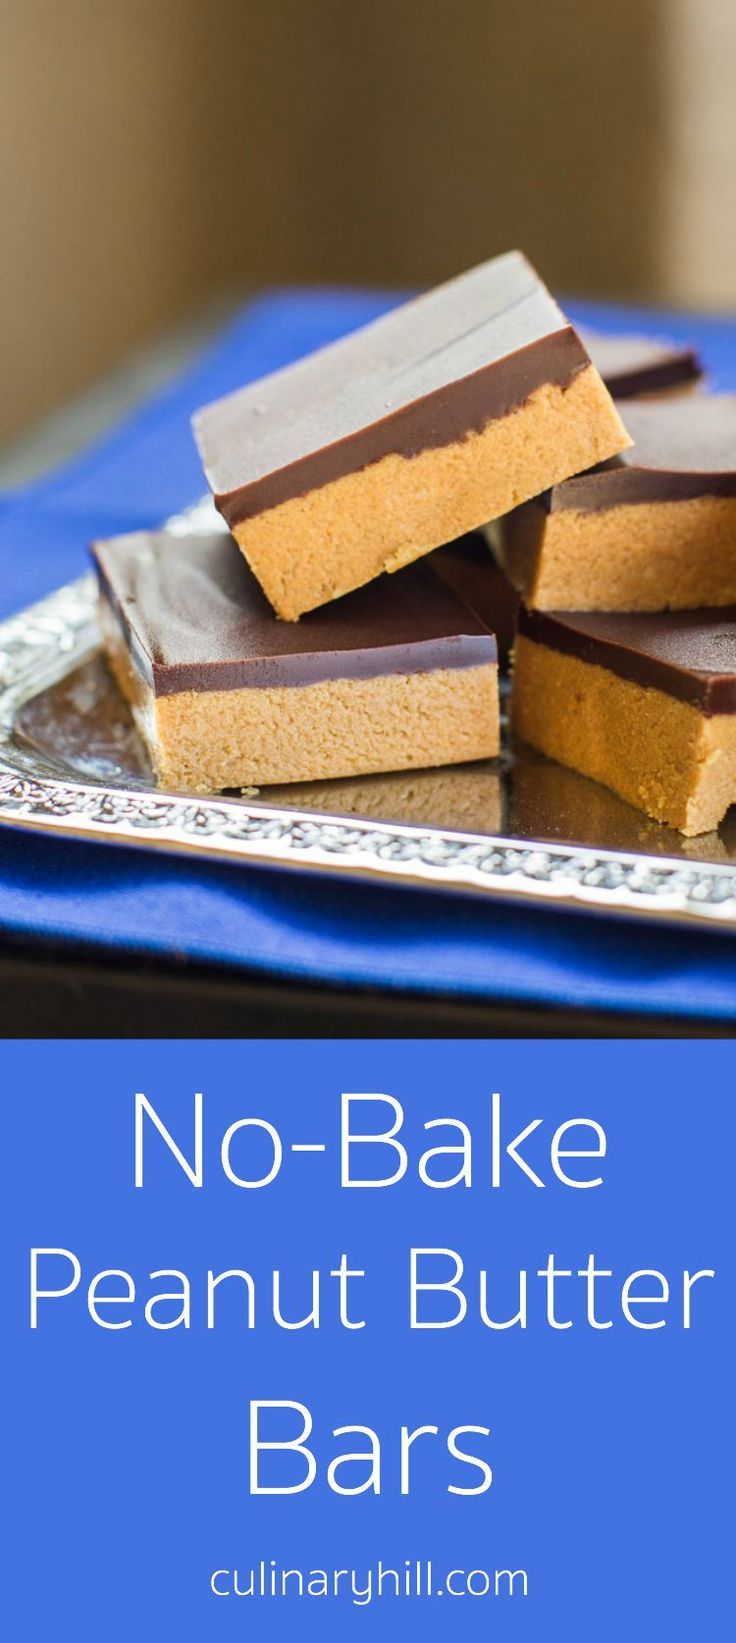 "No-Bake Peanut Butter Bars take only 5 ingredients and 10 minutes (plus chilling time). My Grandma calls them ""Almost Reese's"" for good reason! Naturally gluten-free. (Chocolate Butter Bars)"